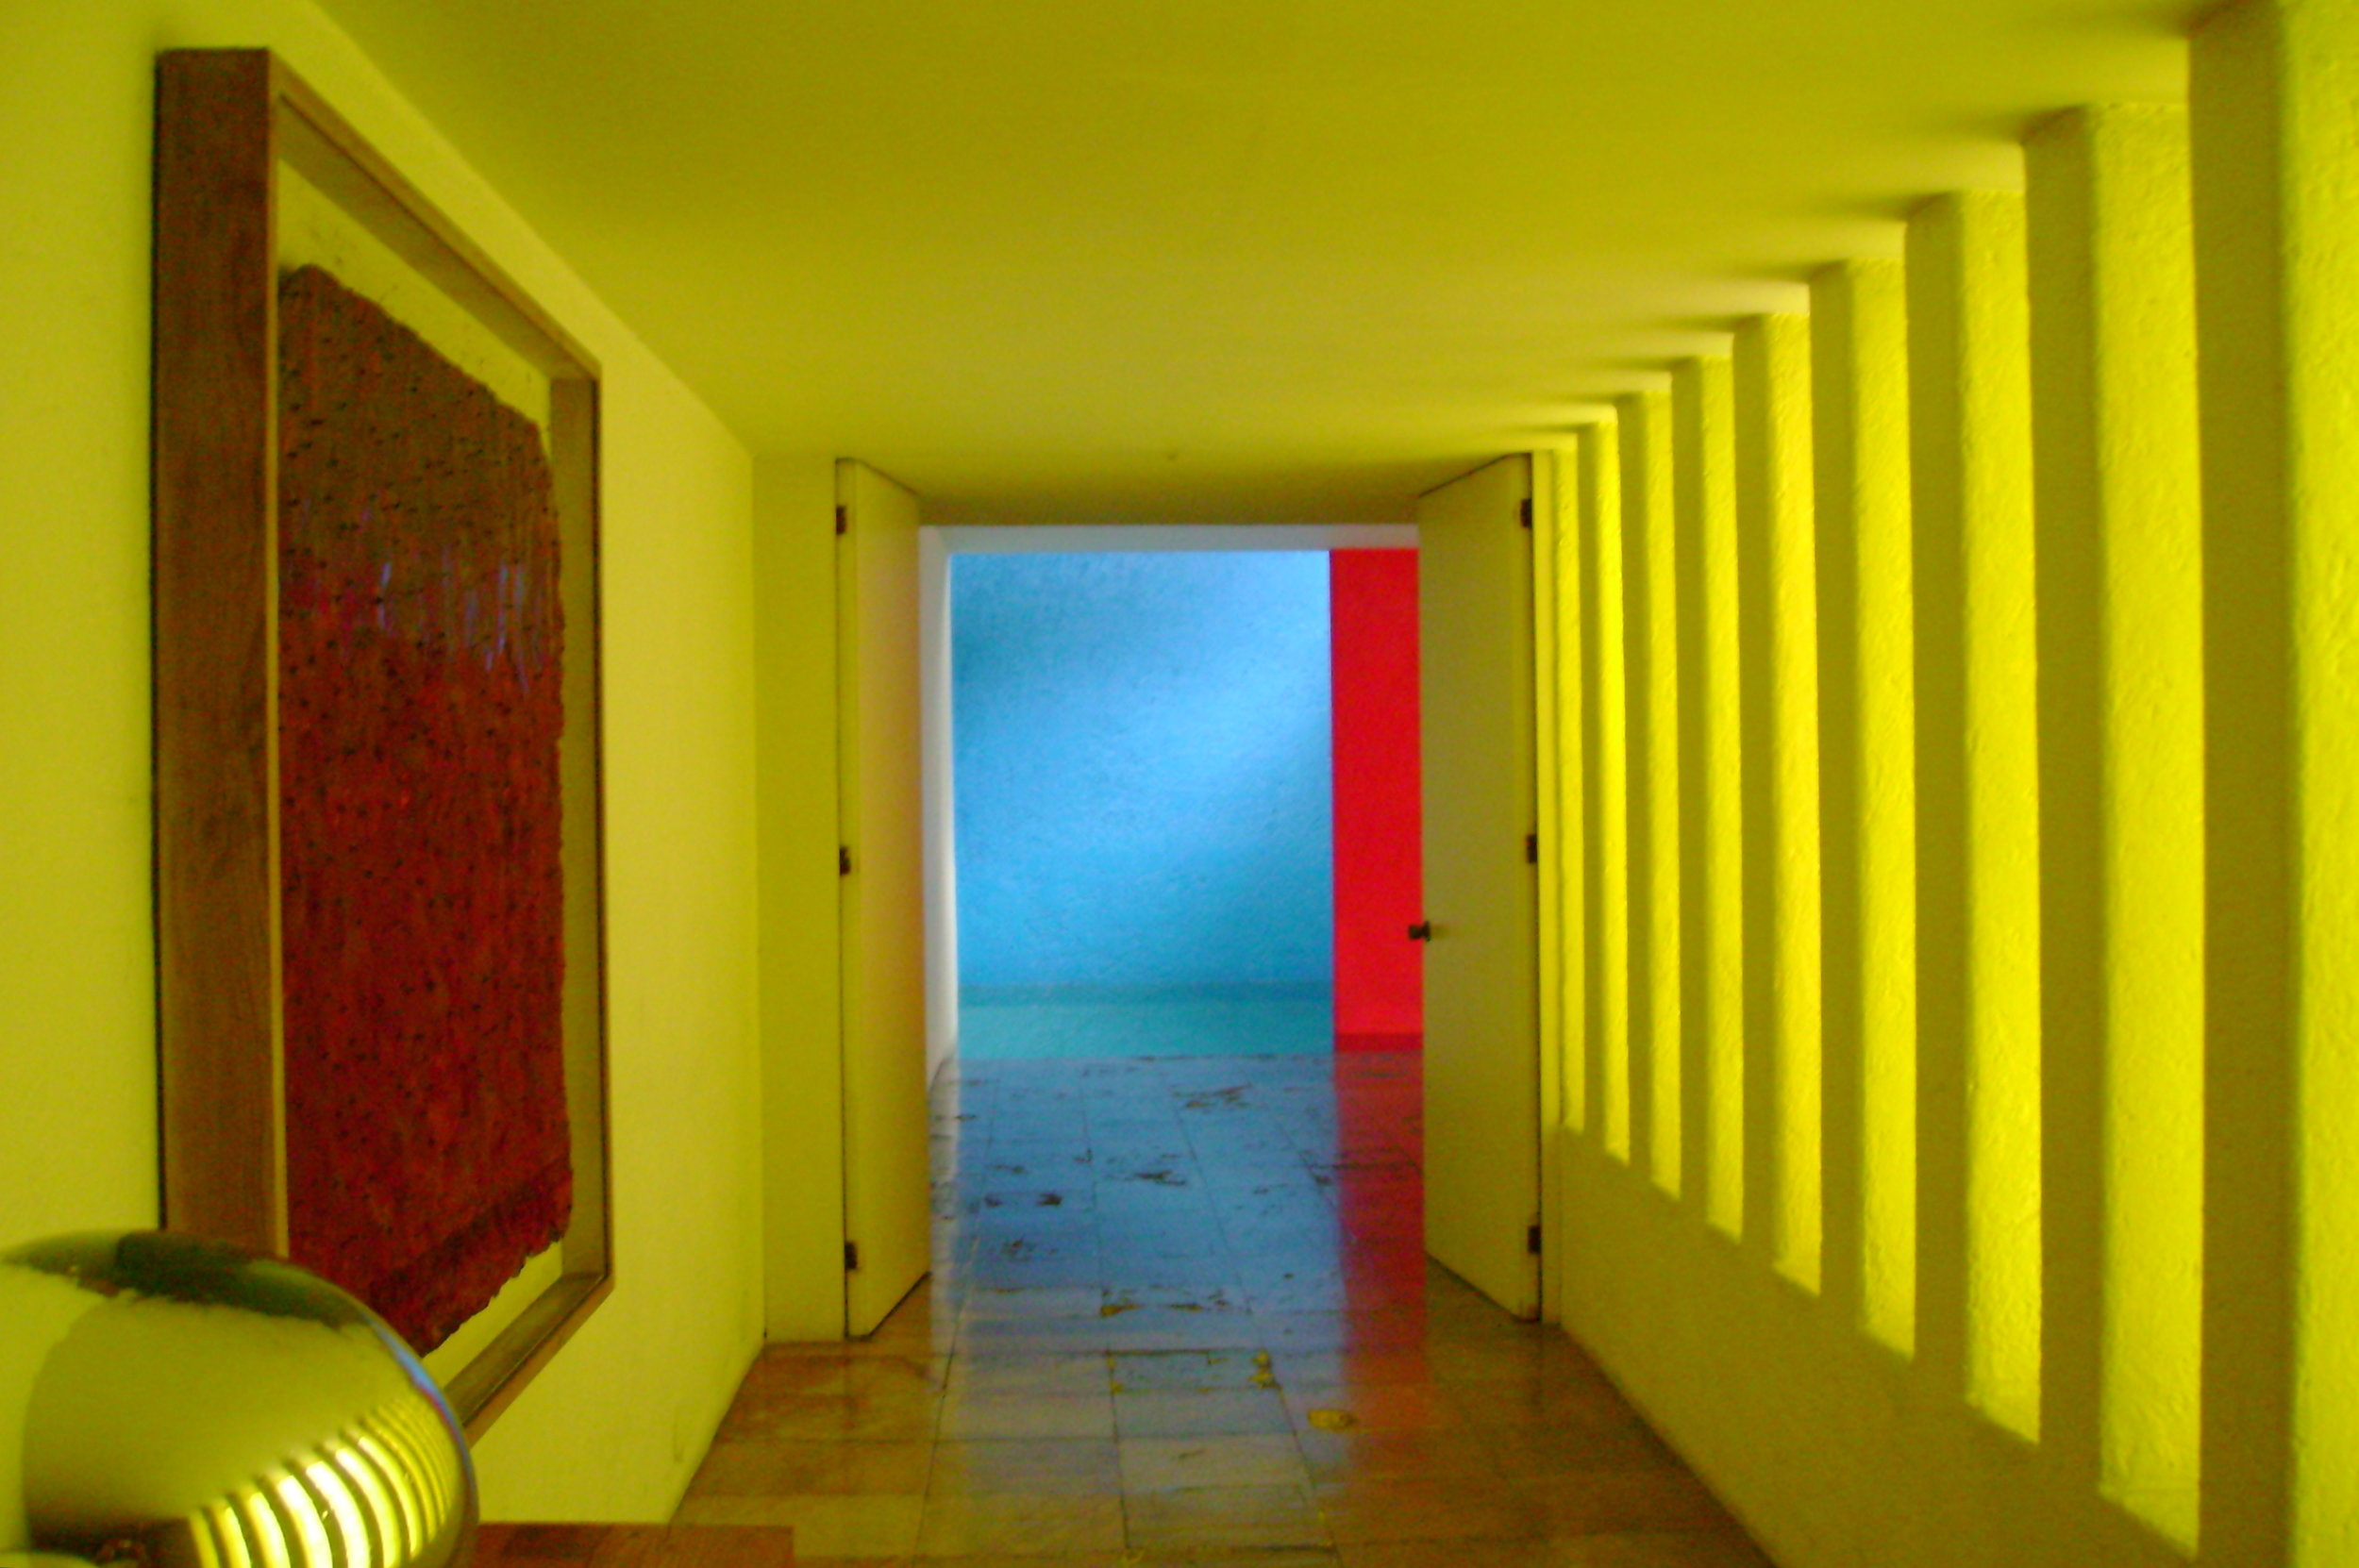 Casa Gilardi, the last house he designed, would later be inhabited by James Turrell.